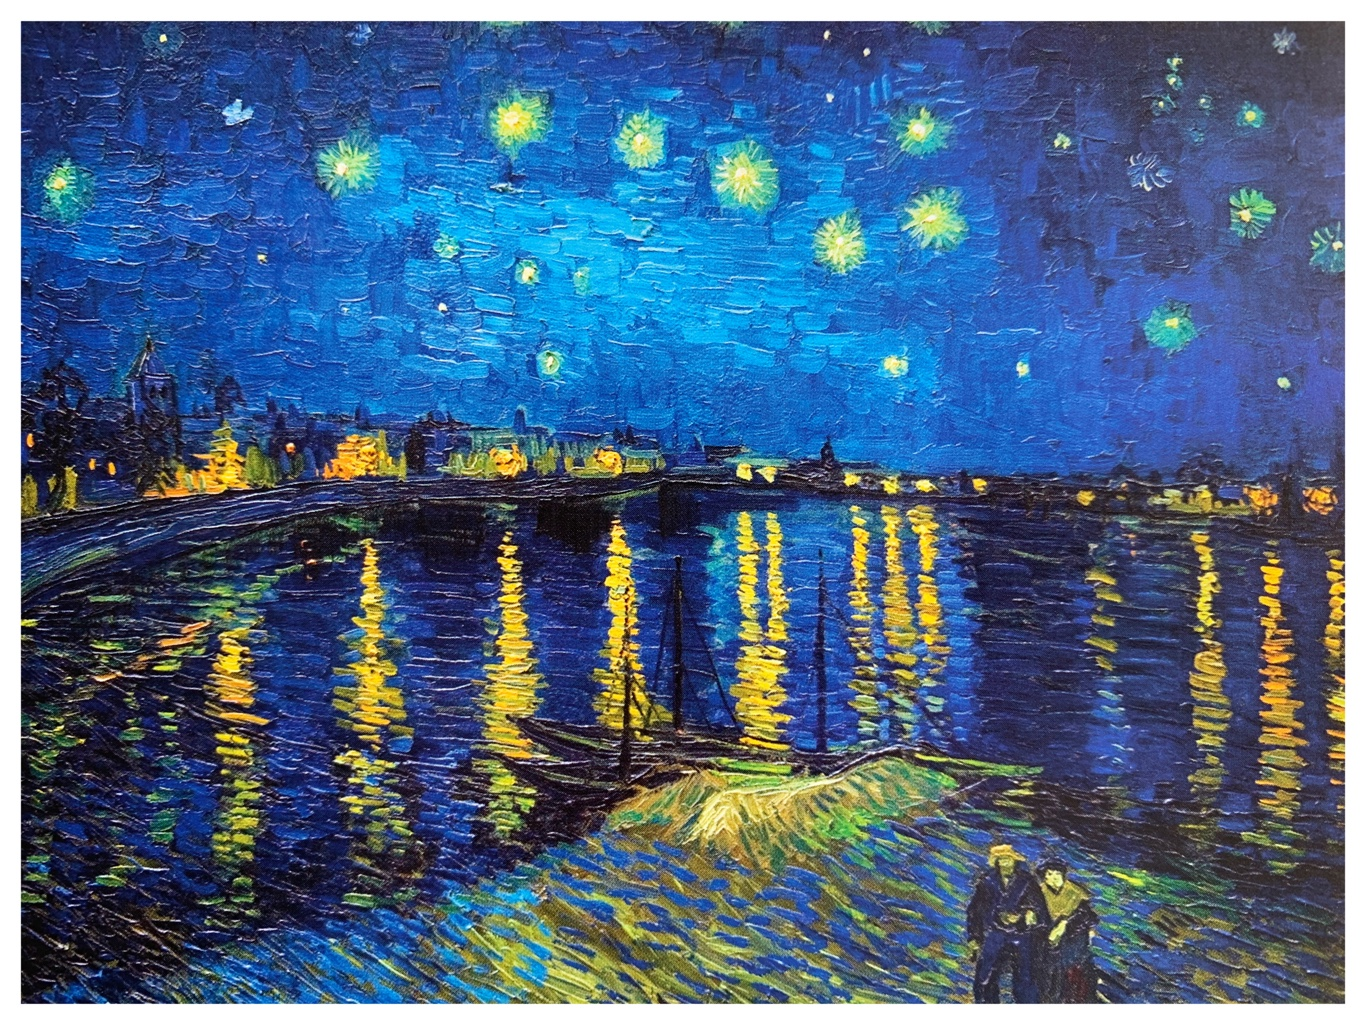 "#FridayPainting: Vincent Van Gogh ""Starry Night over the Rhône"""